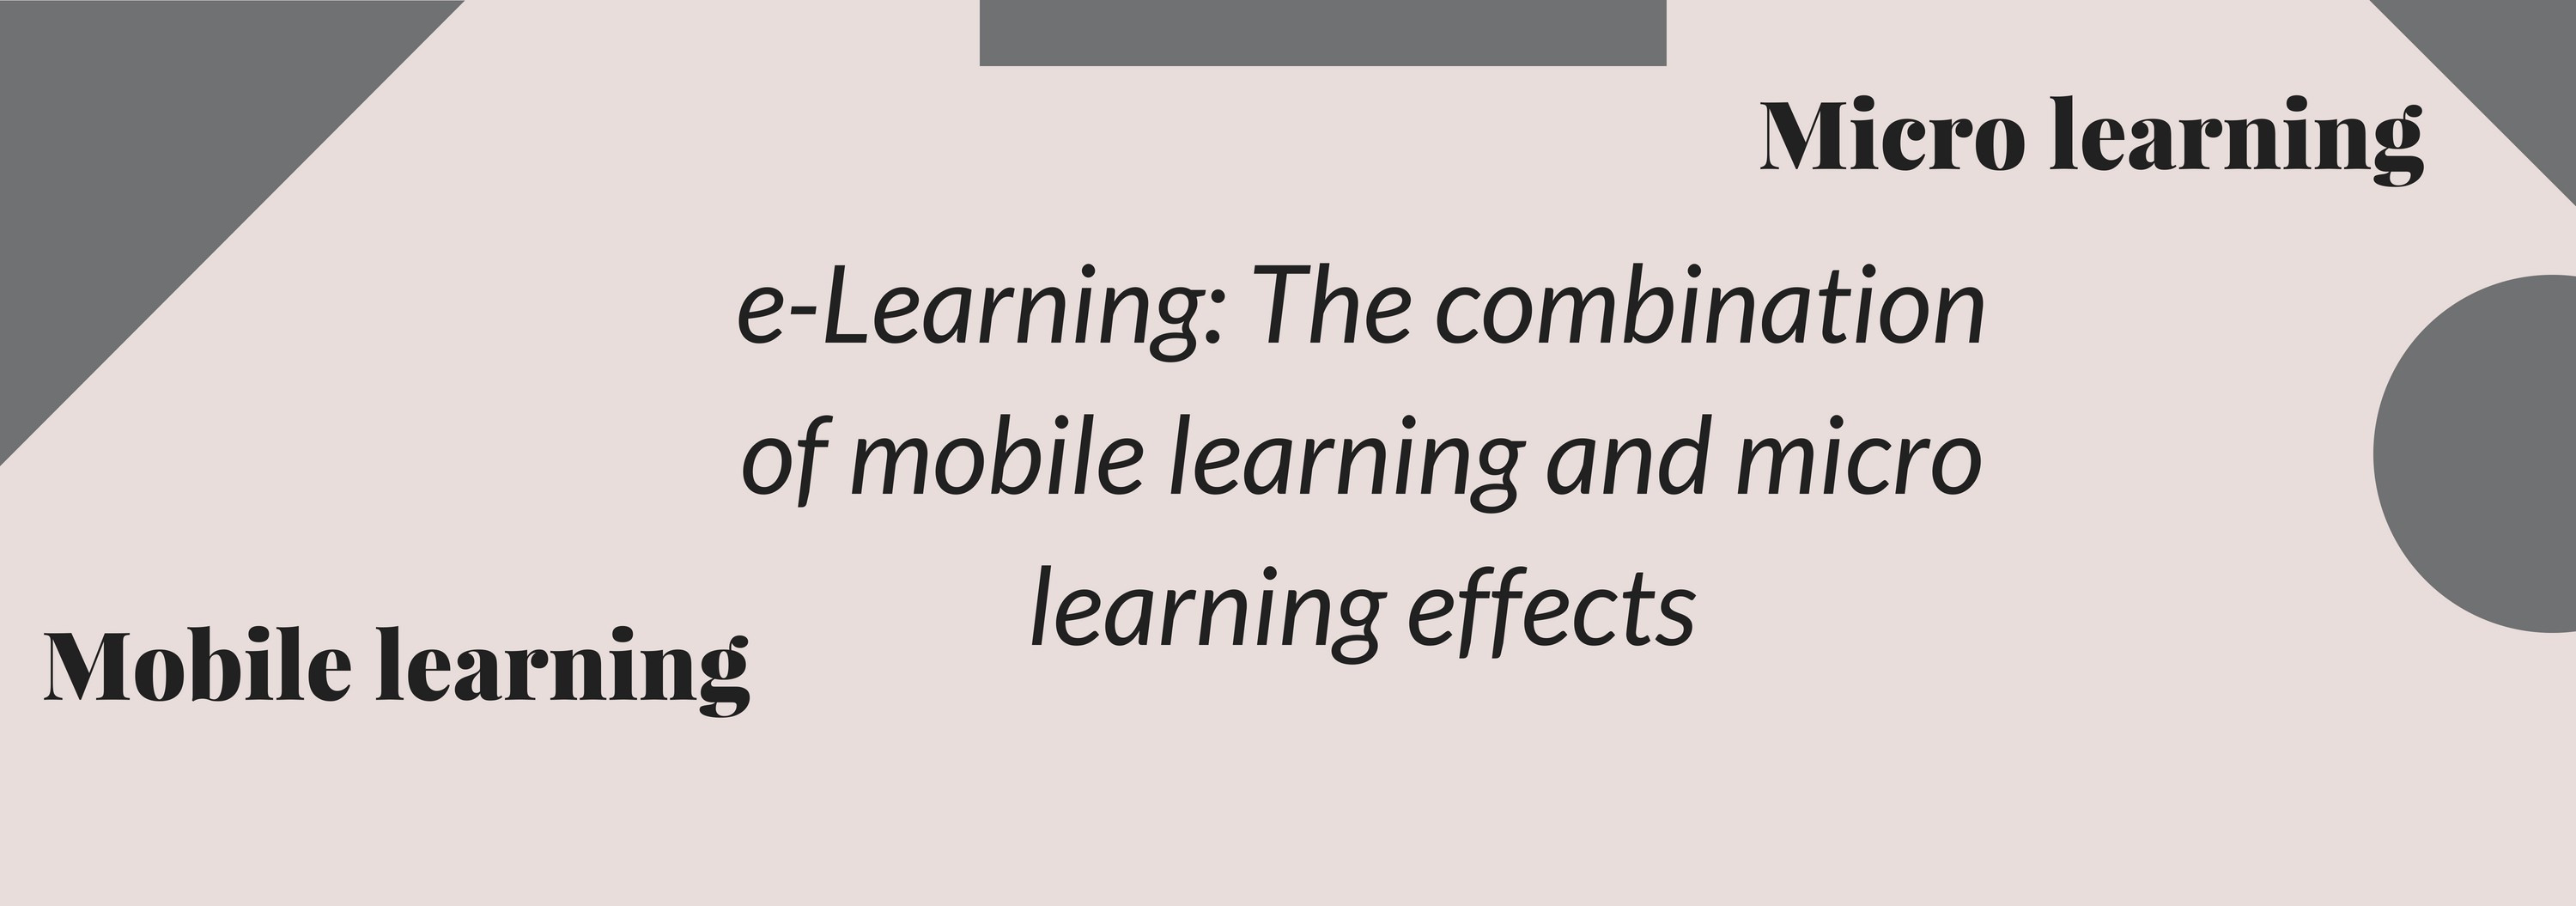 e-Learning: The combination of mobile learning and microlearning effects